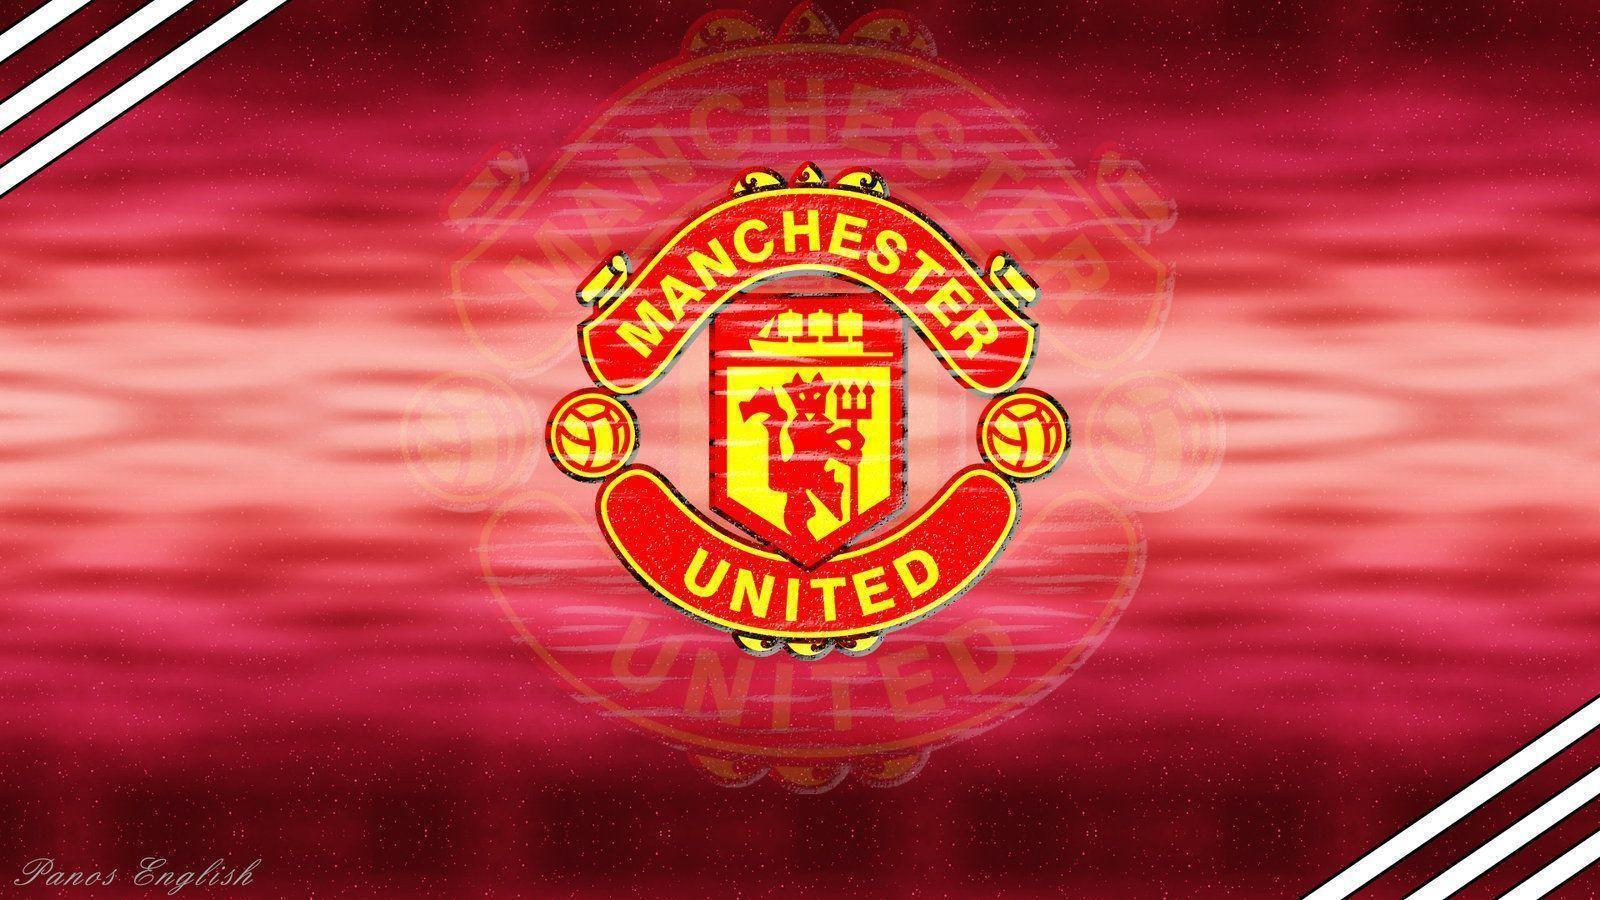 Manchester United Wallpapers HD 2017